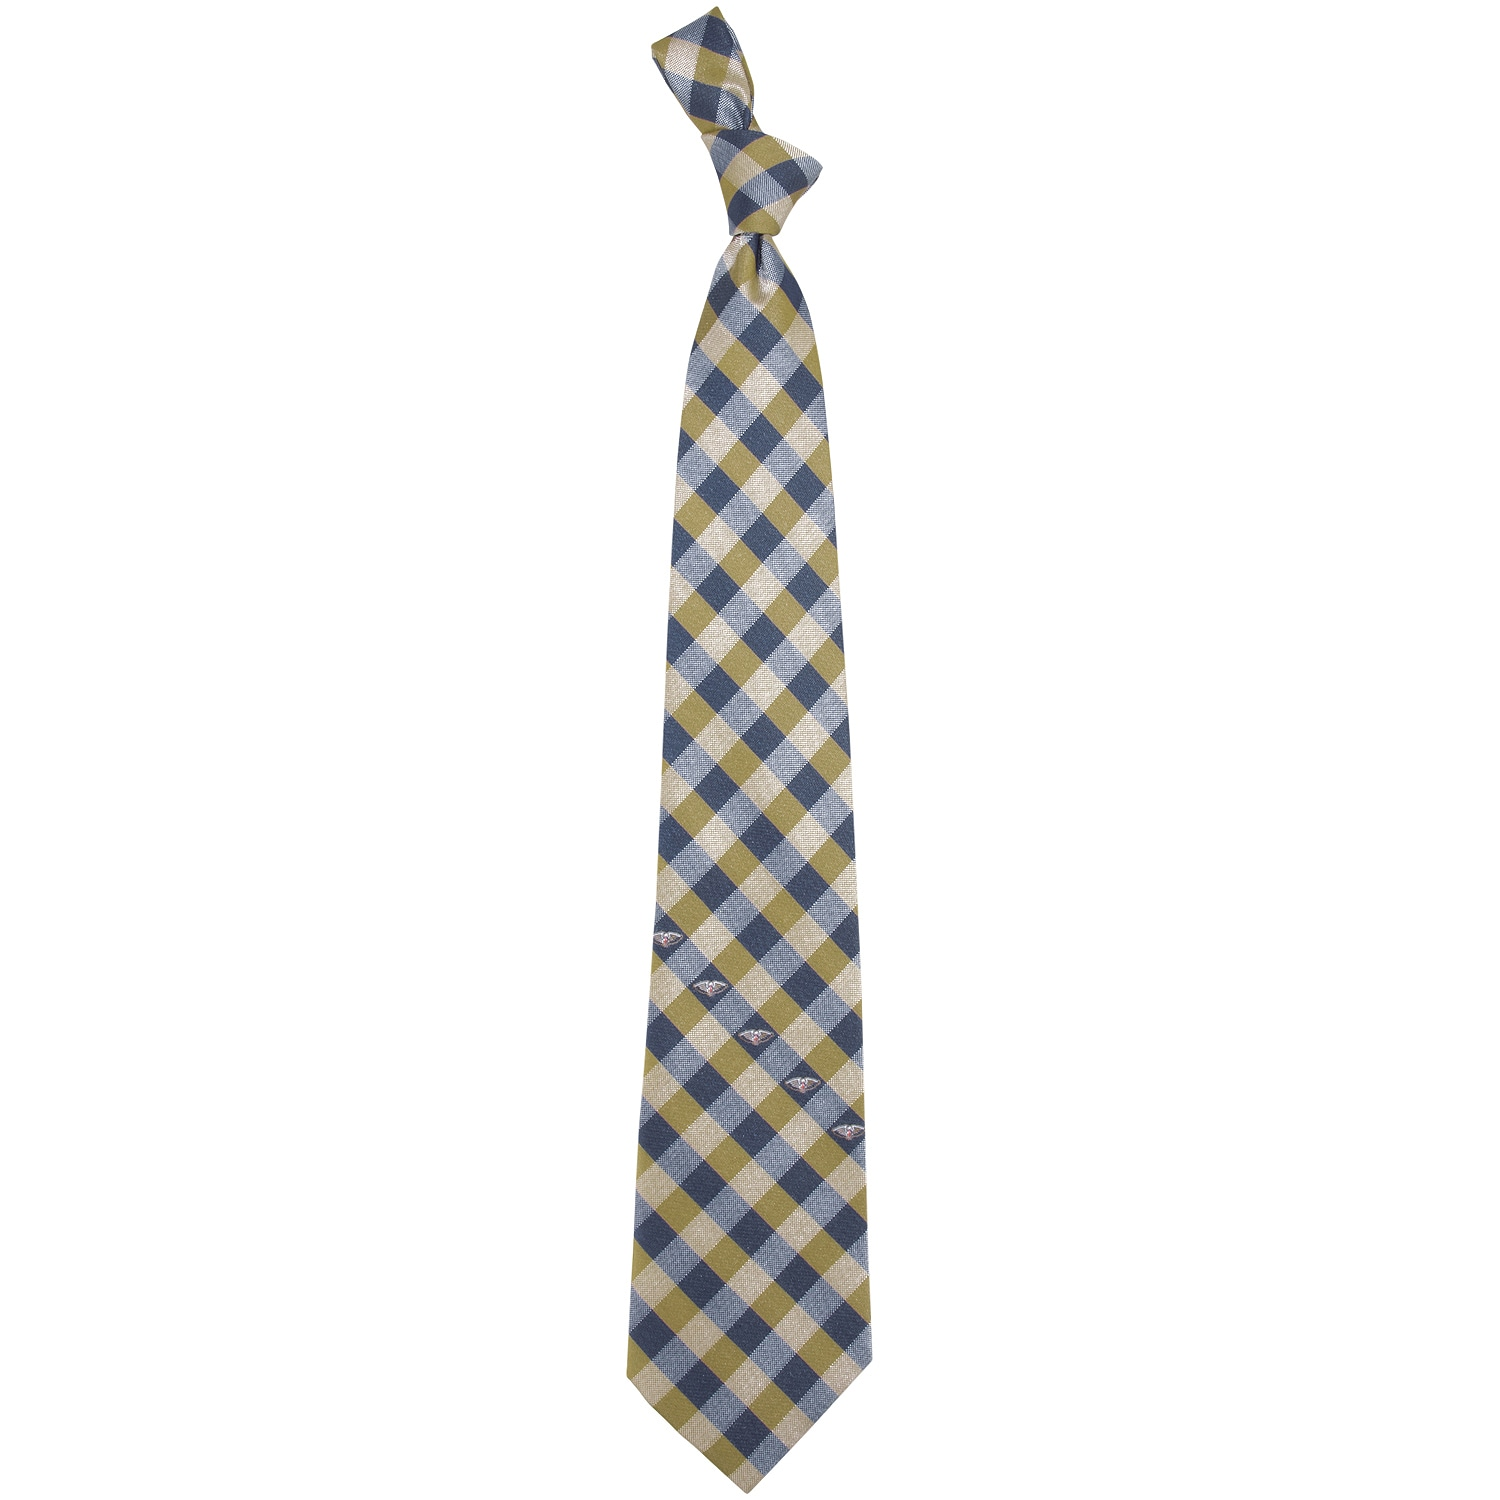 New Orleans Pelicans Woven Checkered Tie - Navy Blue/Gold